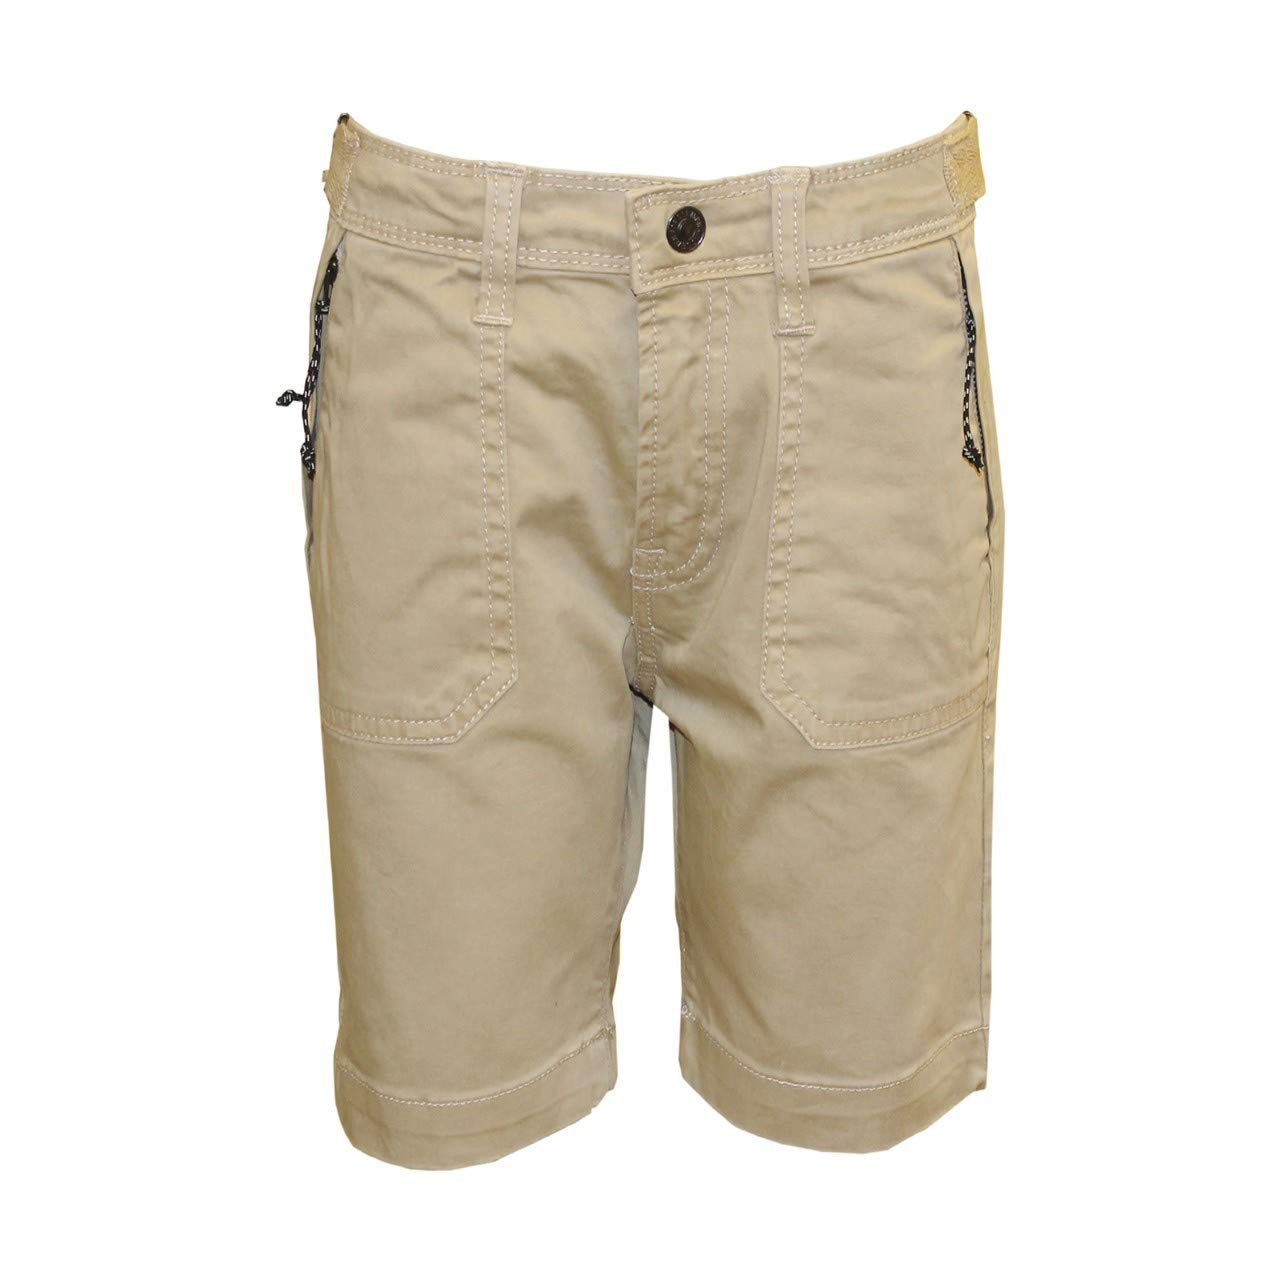 7For All Boy's Children's 4 Pocket Shorts Waist Adjuster